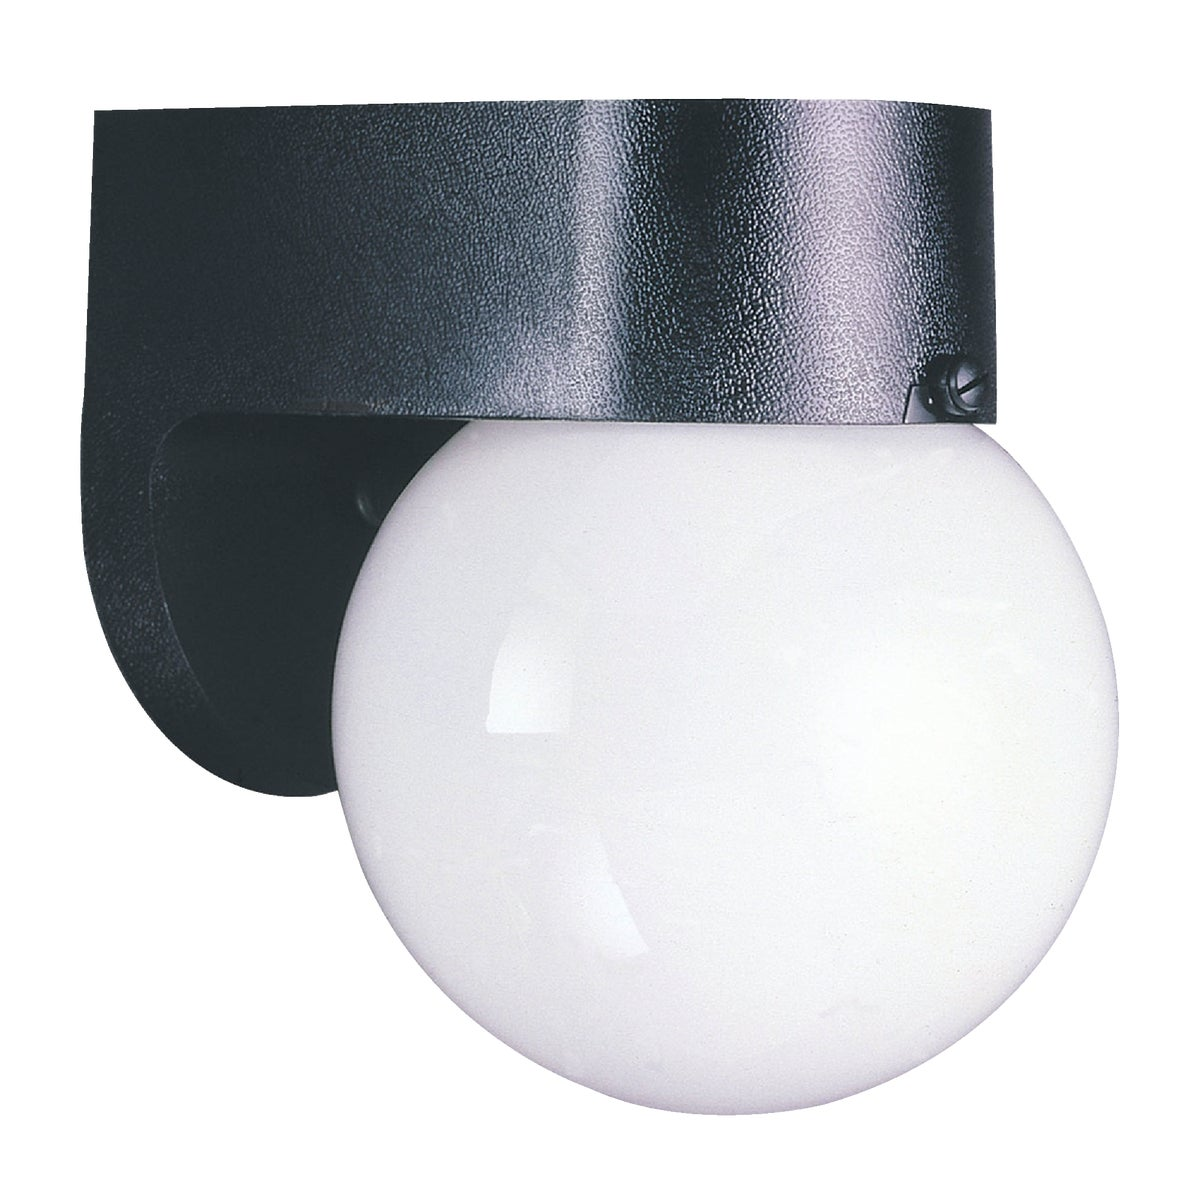 BLK OUTDOOR WALL FIXTURE - IOL137BK by Canarm Gs